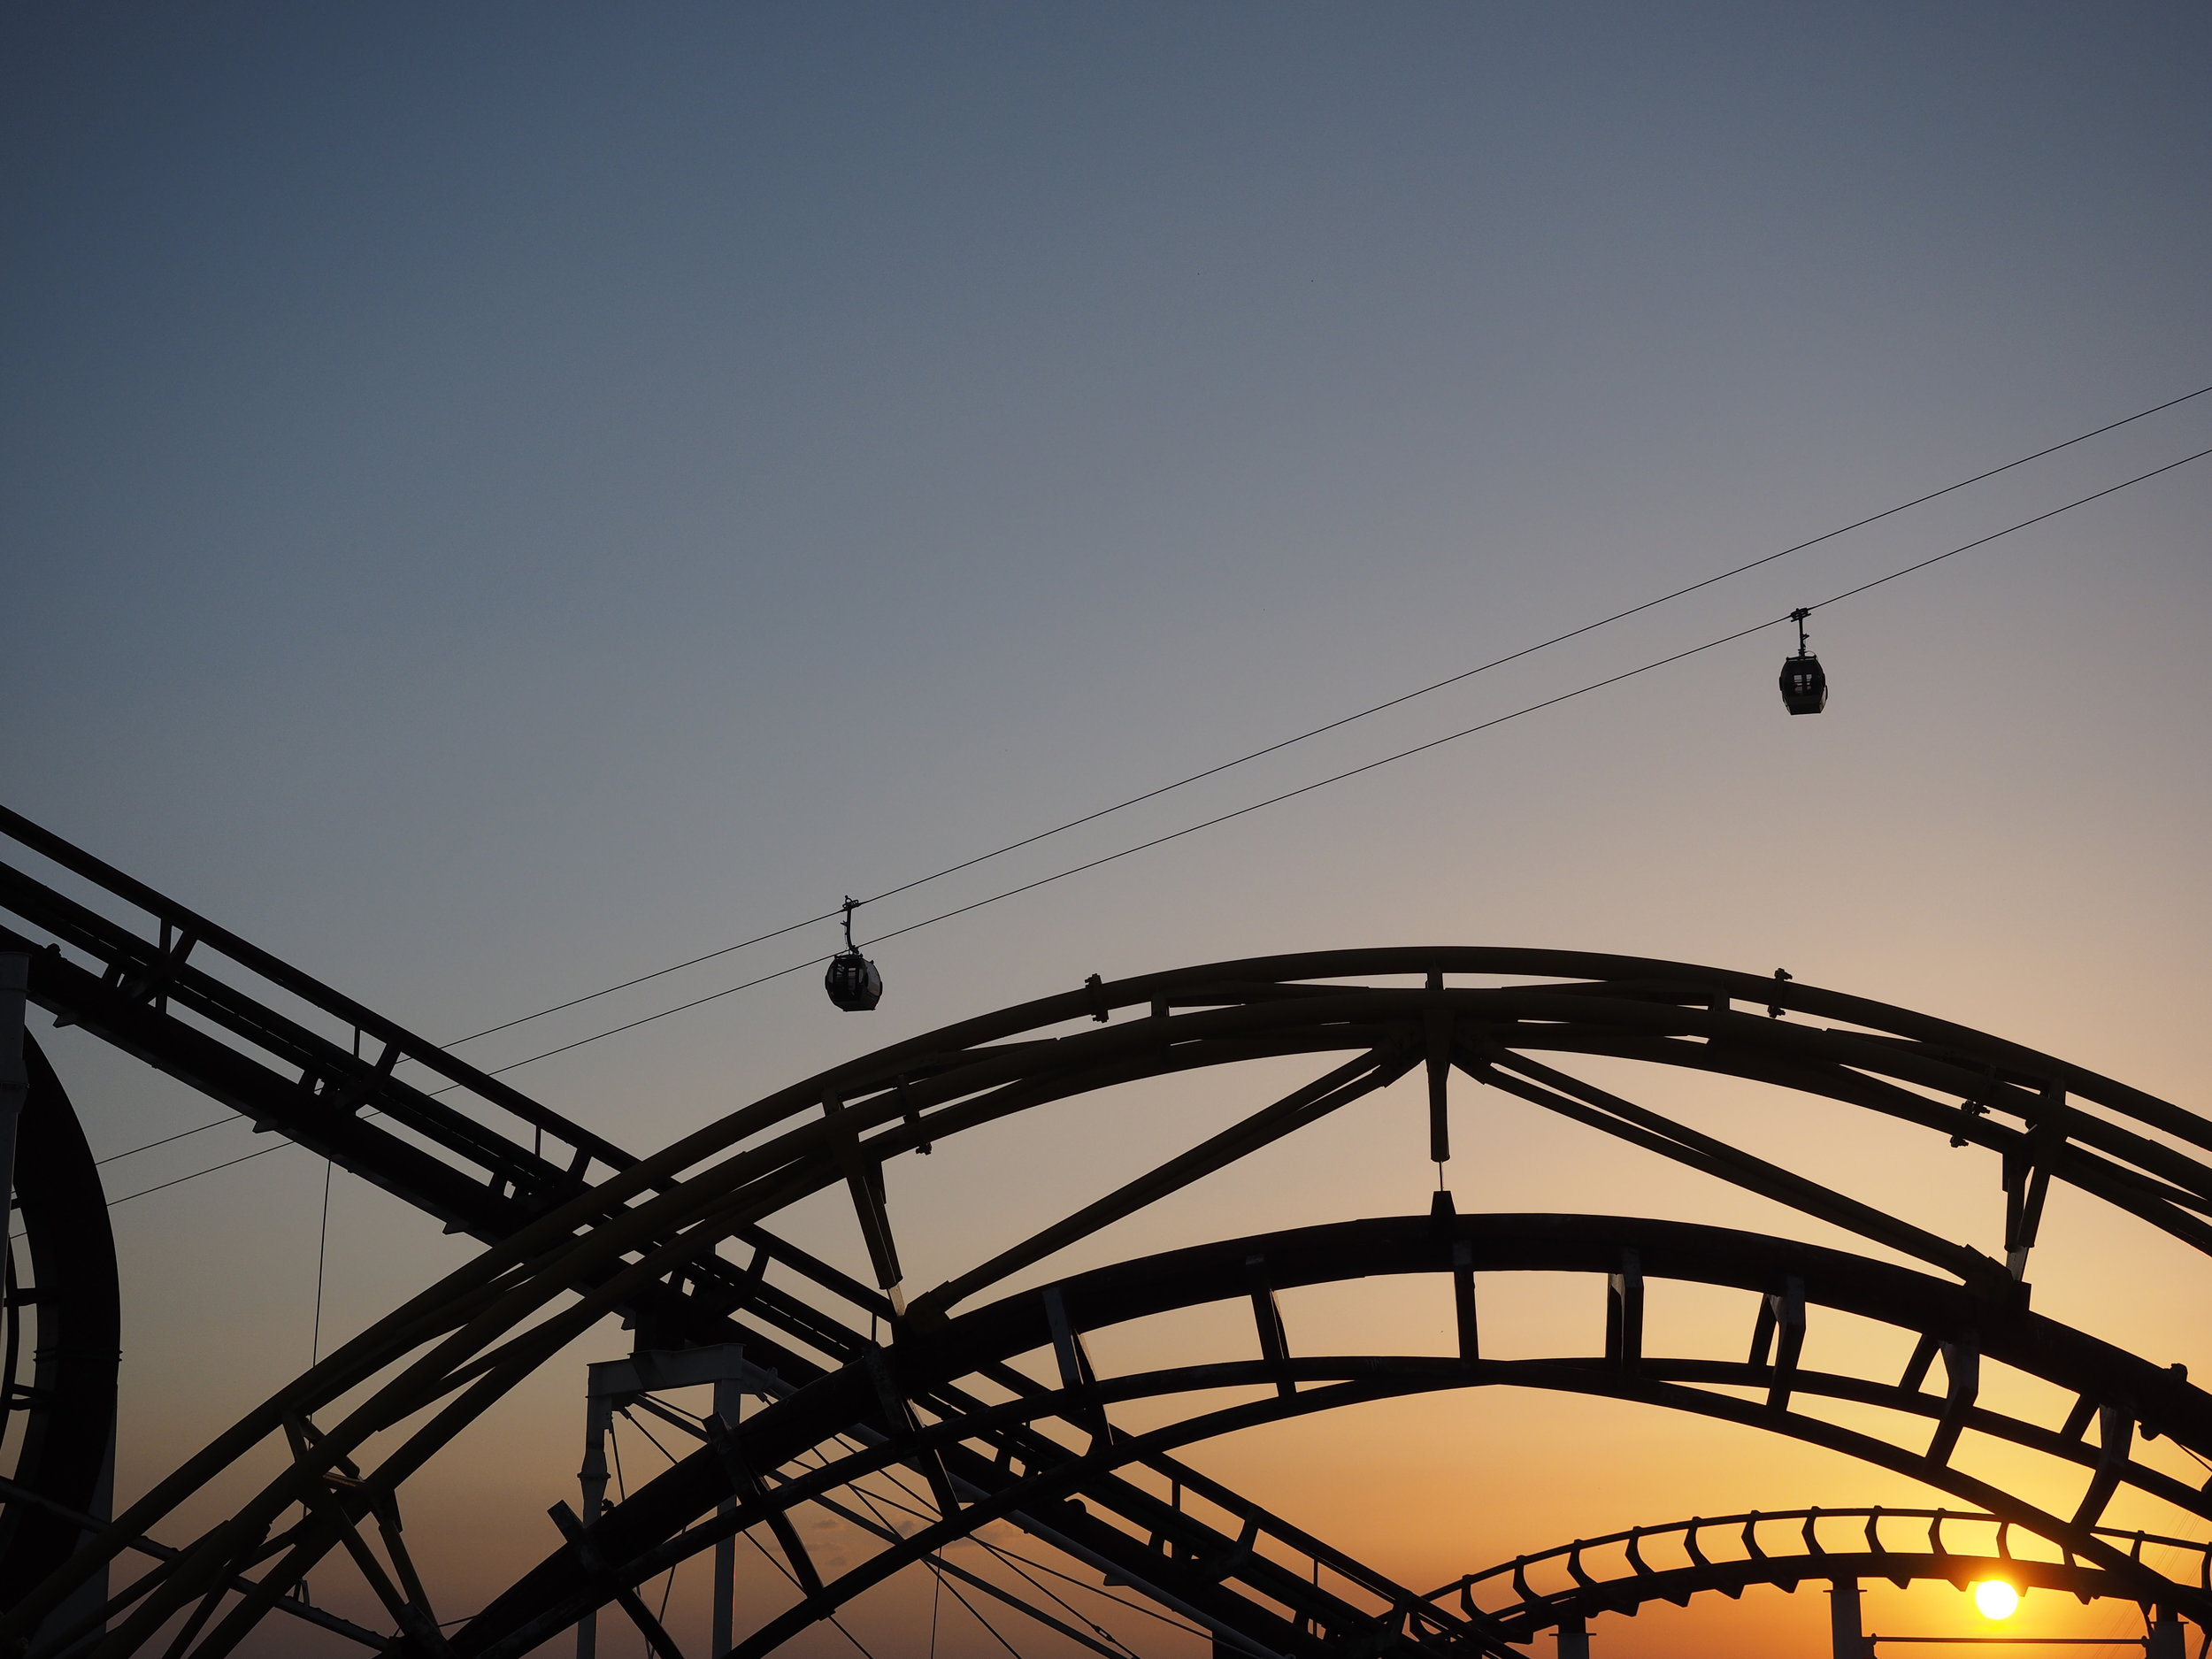 The sun setting over the rides at Chavyland in Sulaymaniyah.